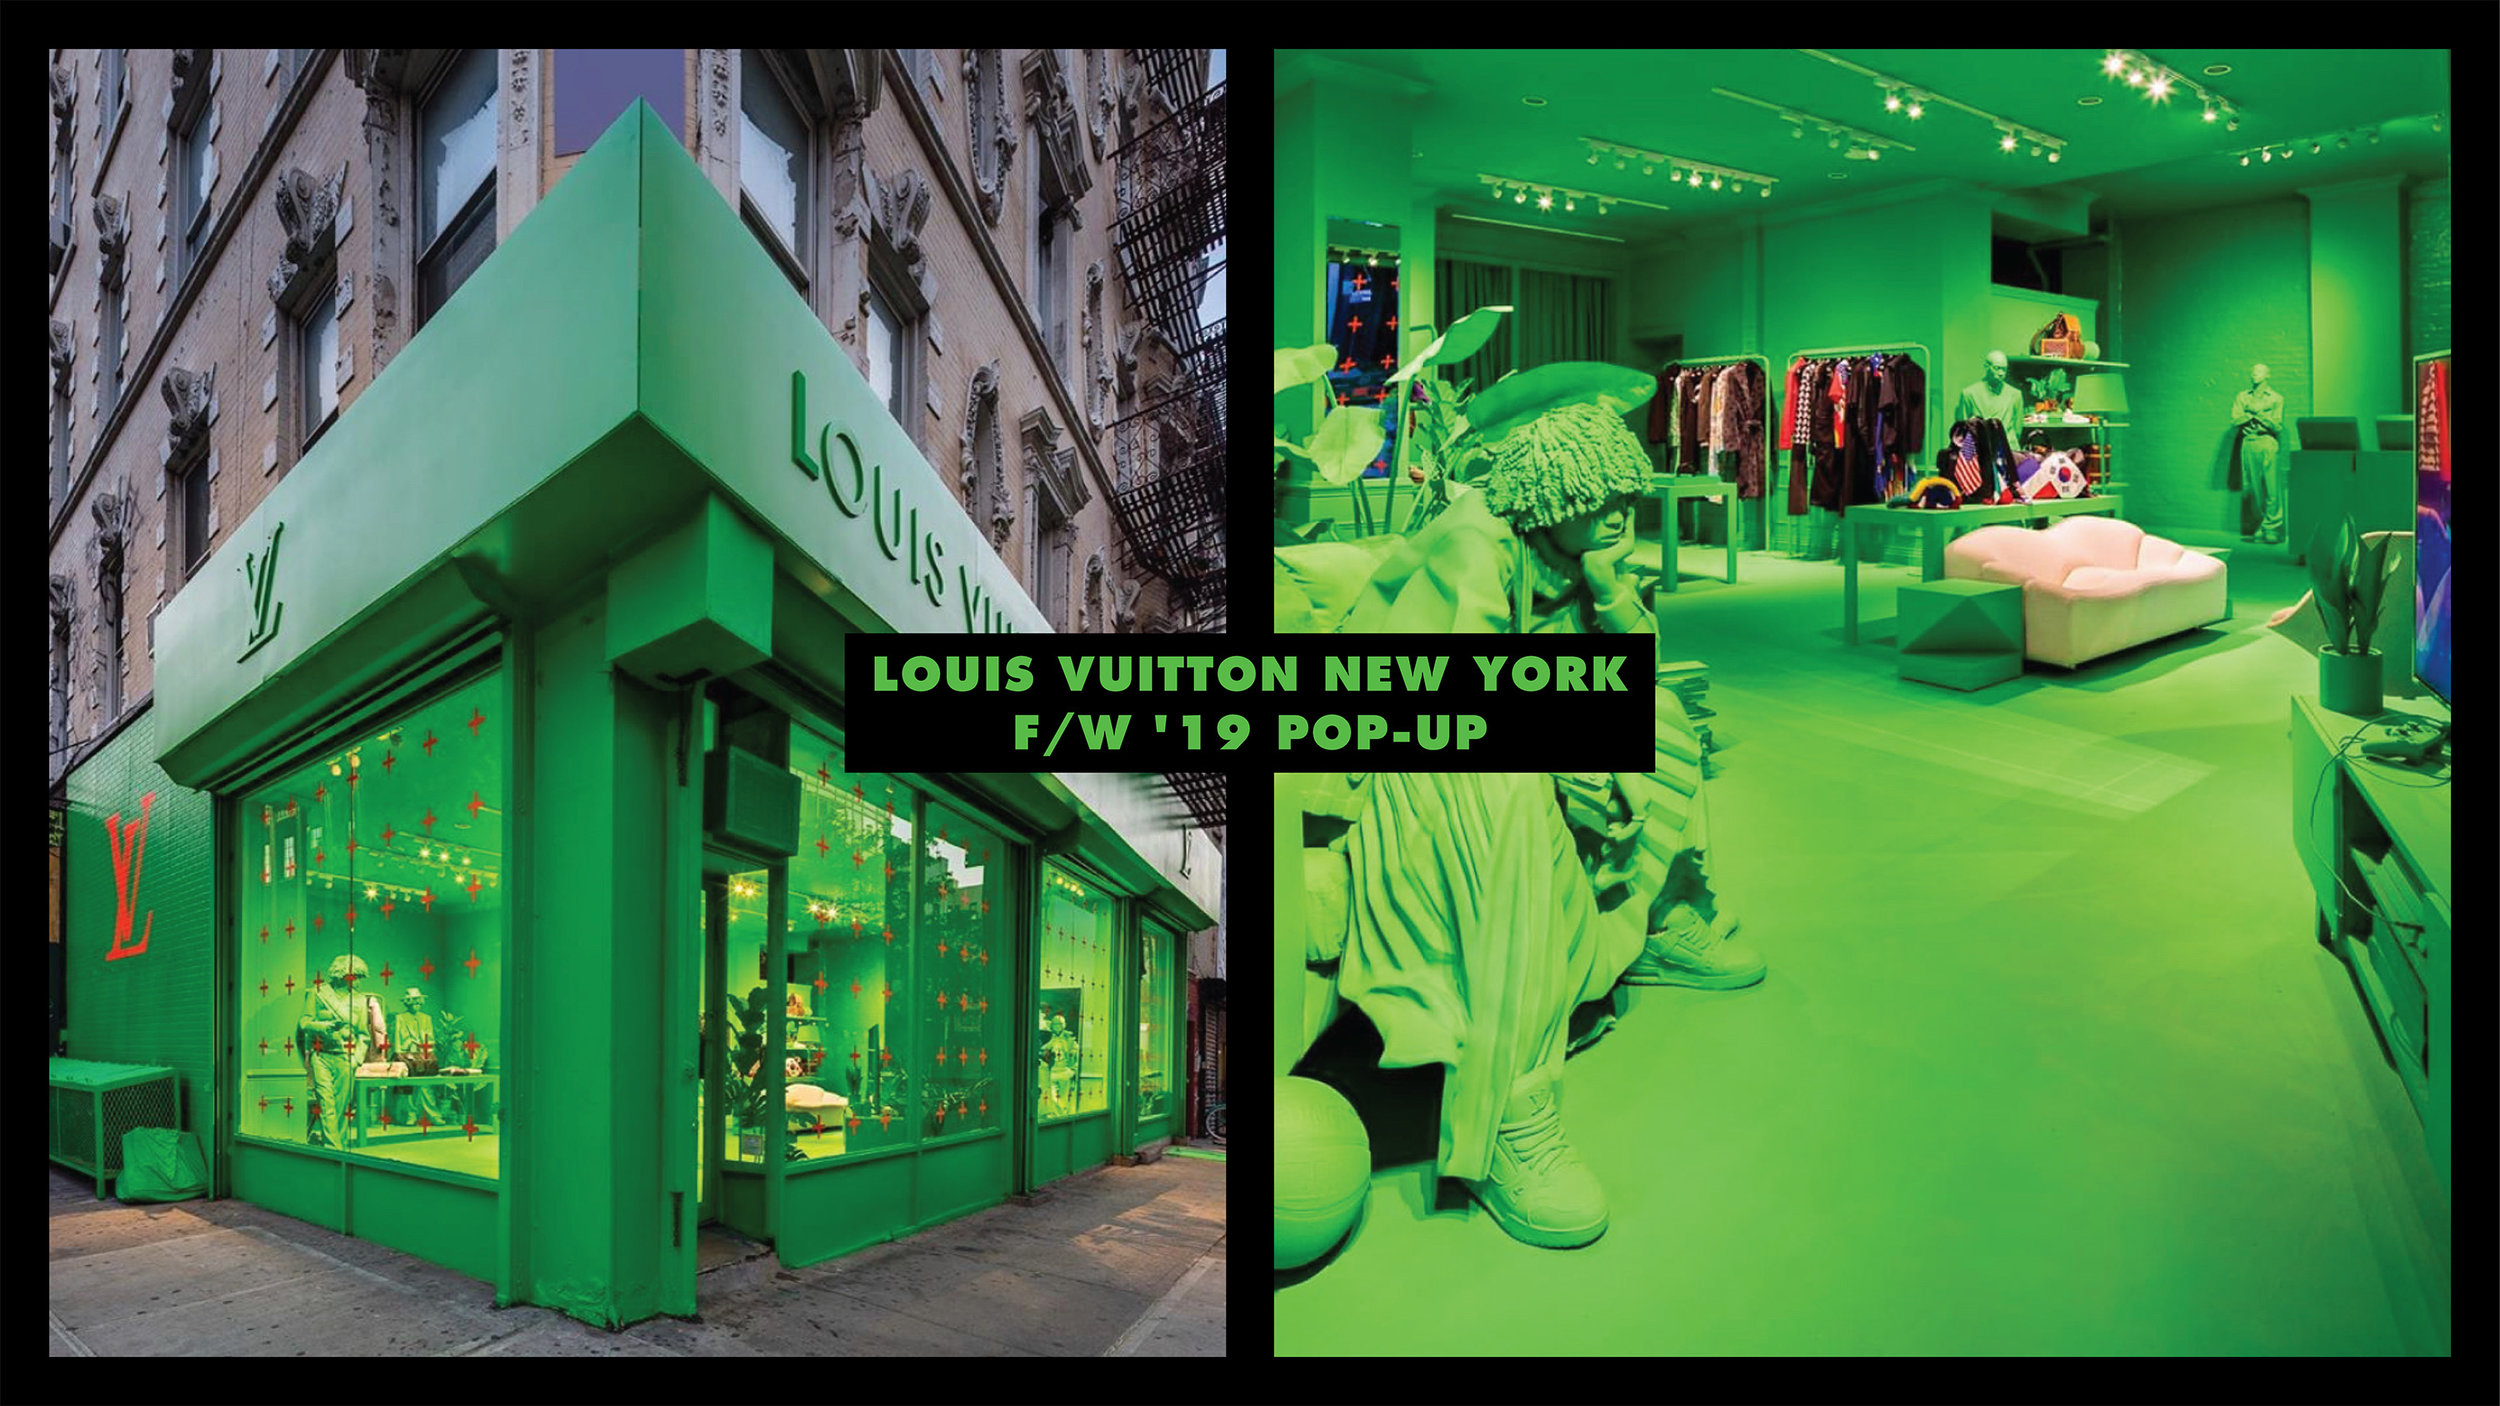 LOUIS VUITTON NYC POP-UP - FALL / WINTER 19 MENSWEAR COLLECTION